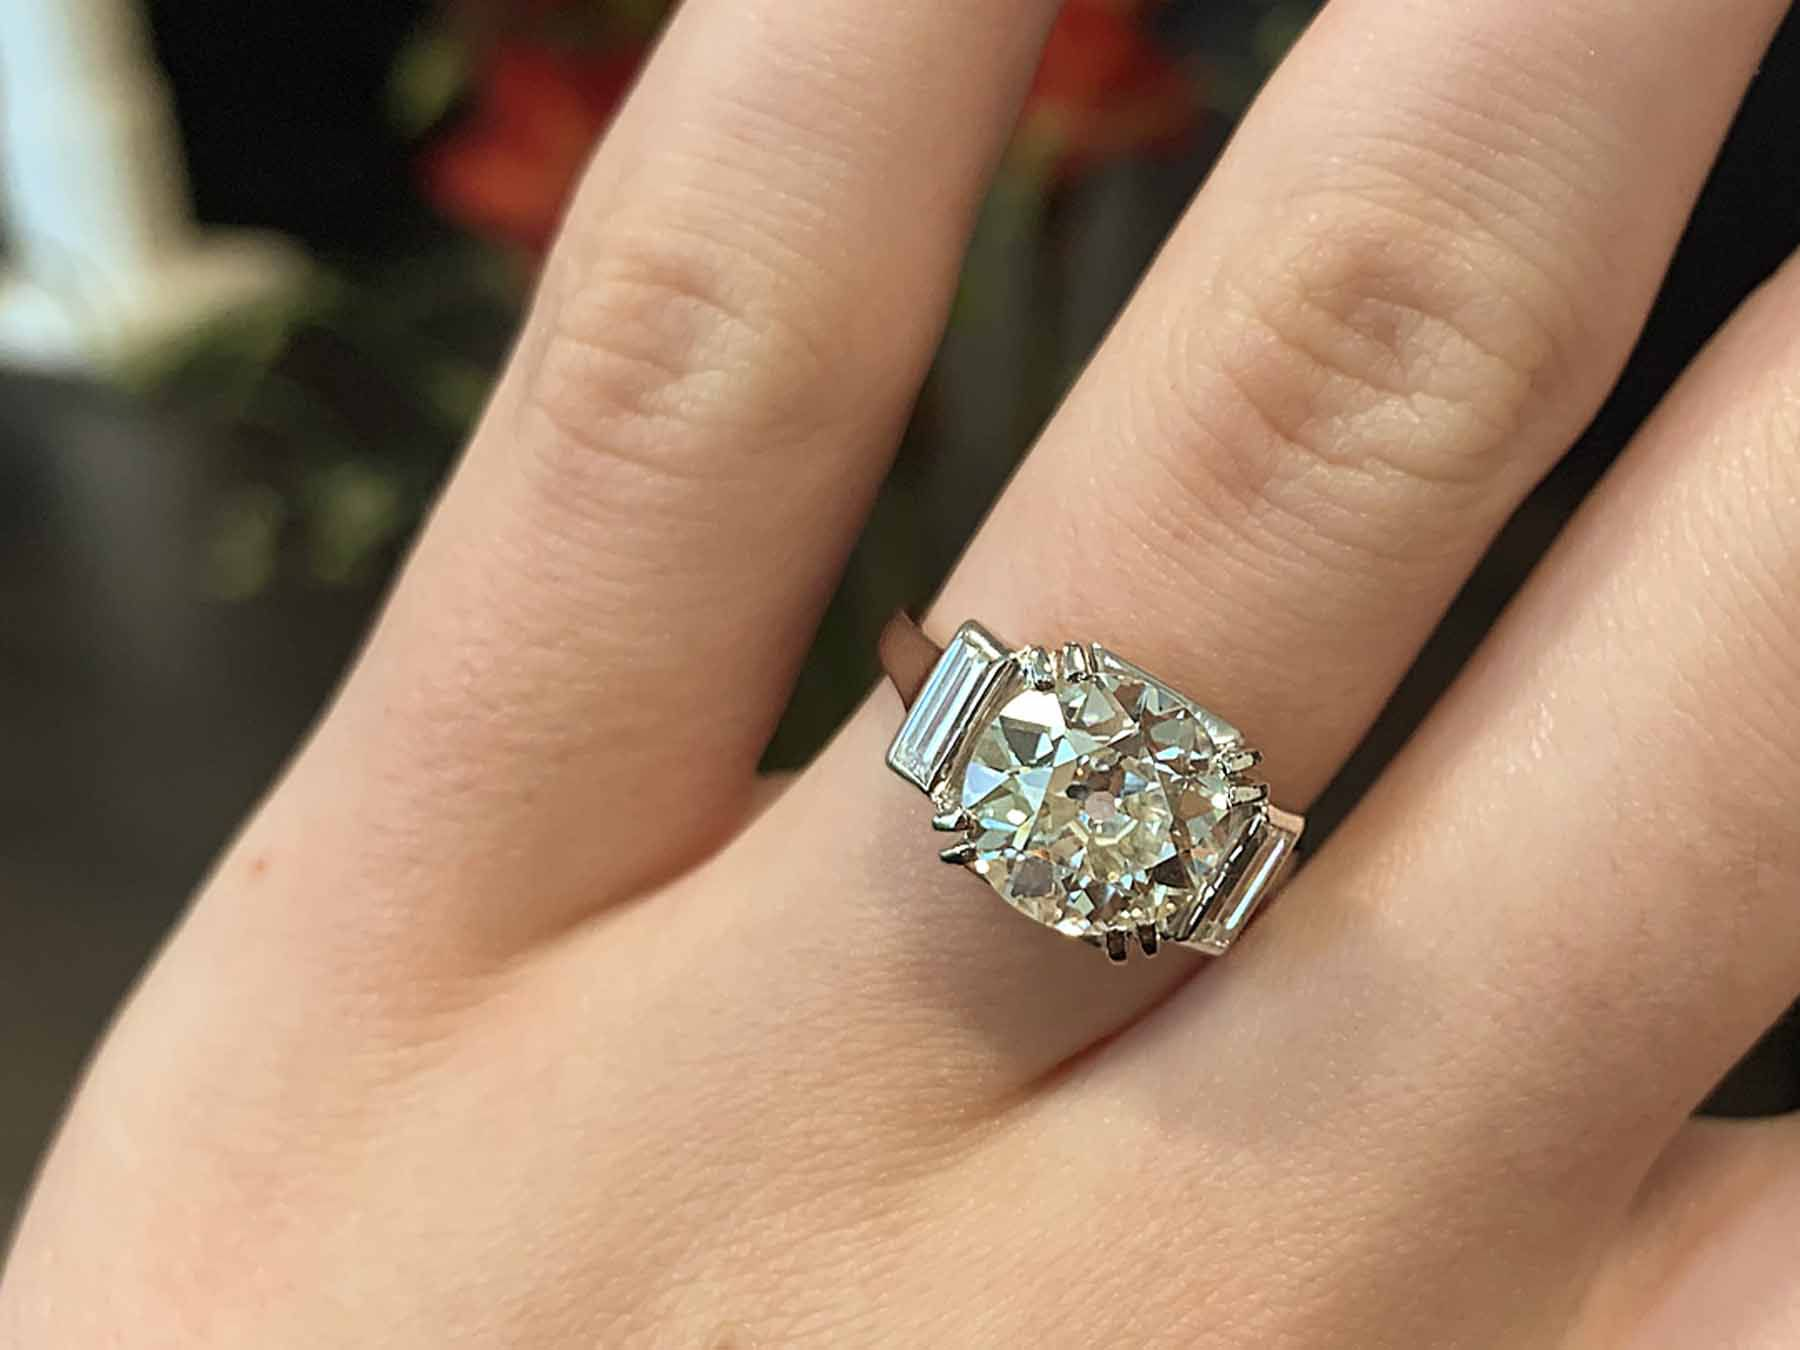 When you should take off your engagement ring